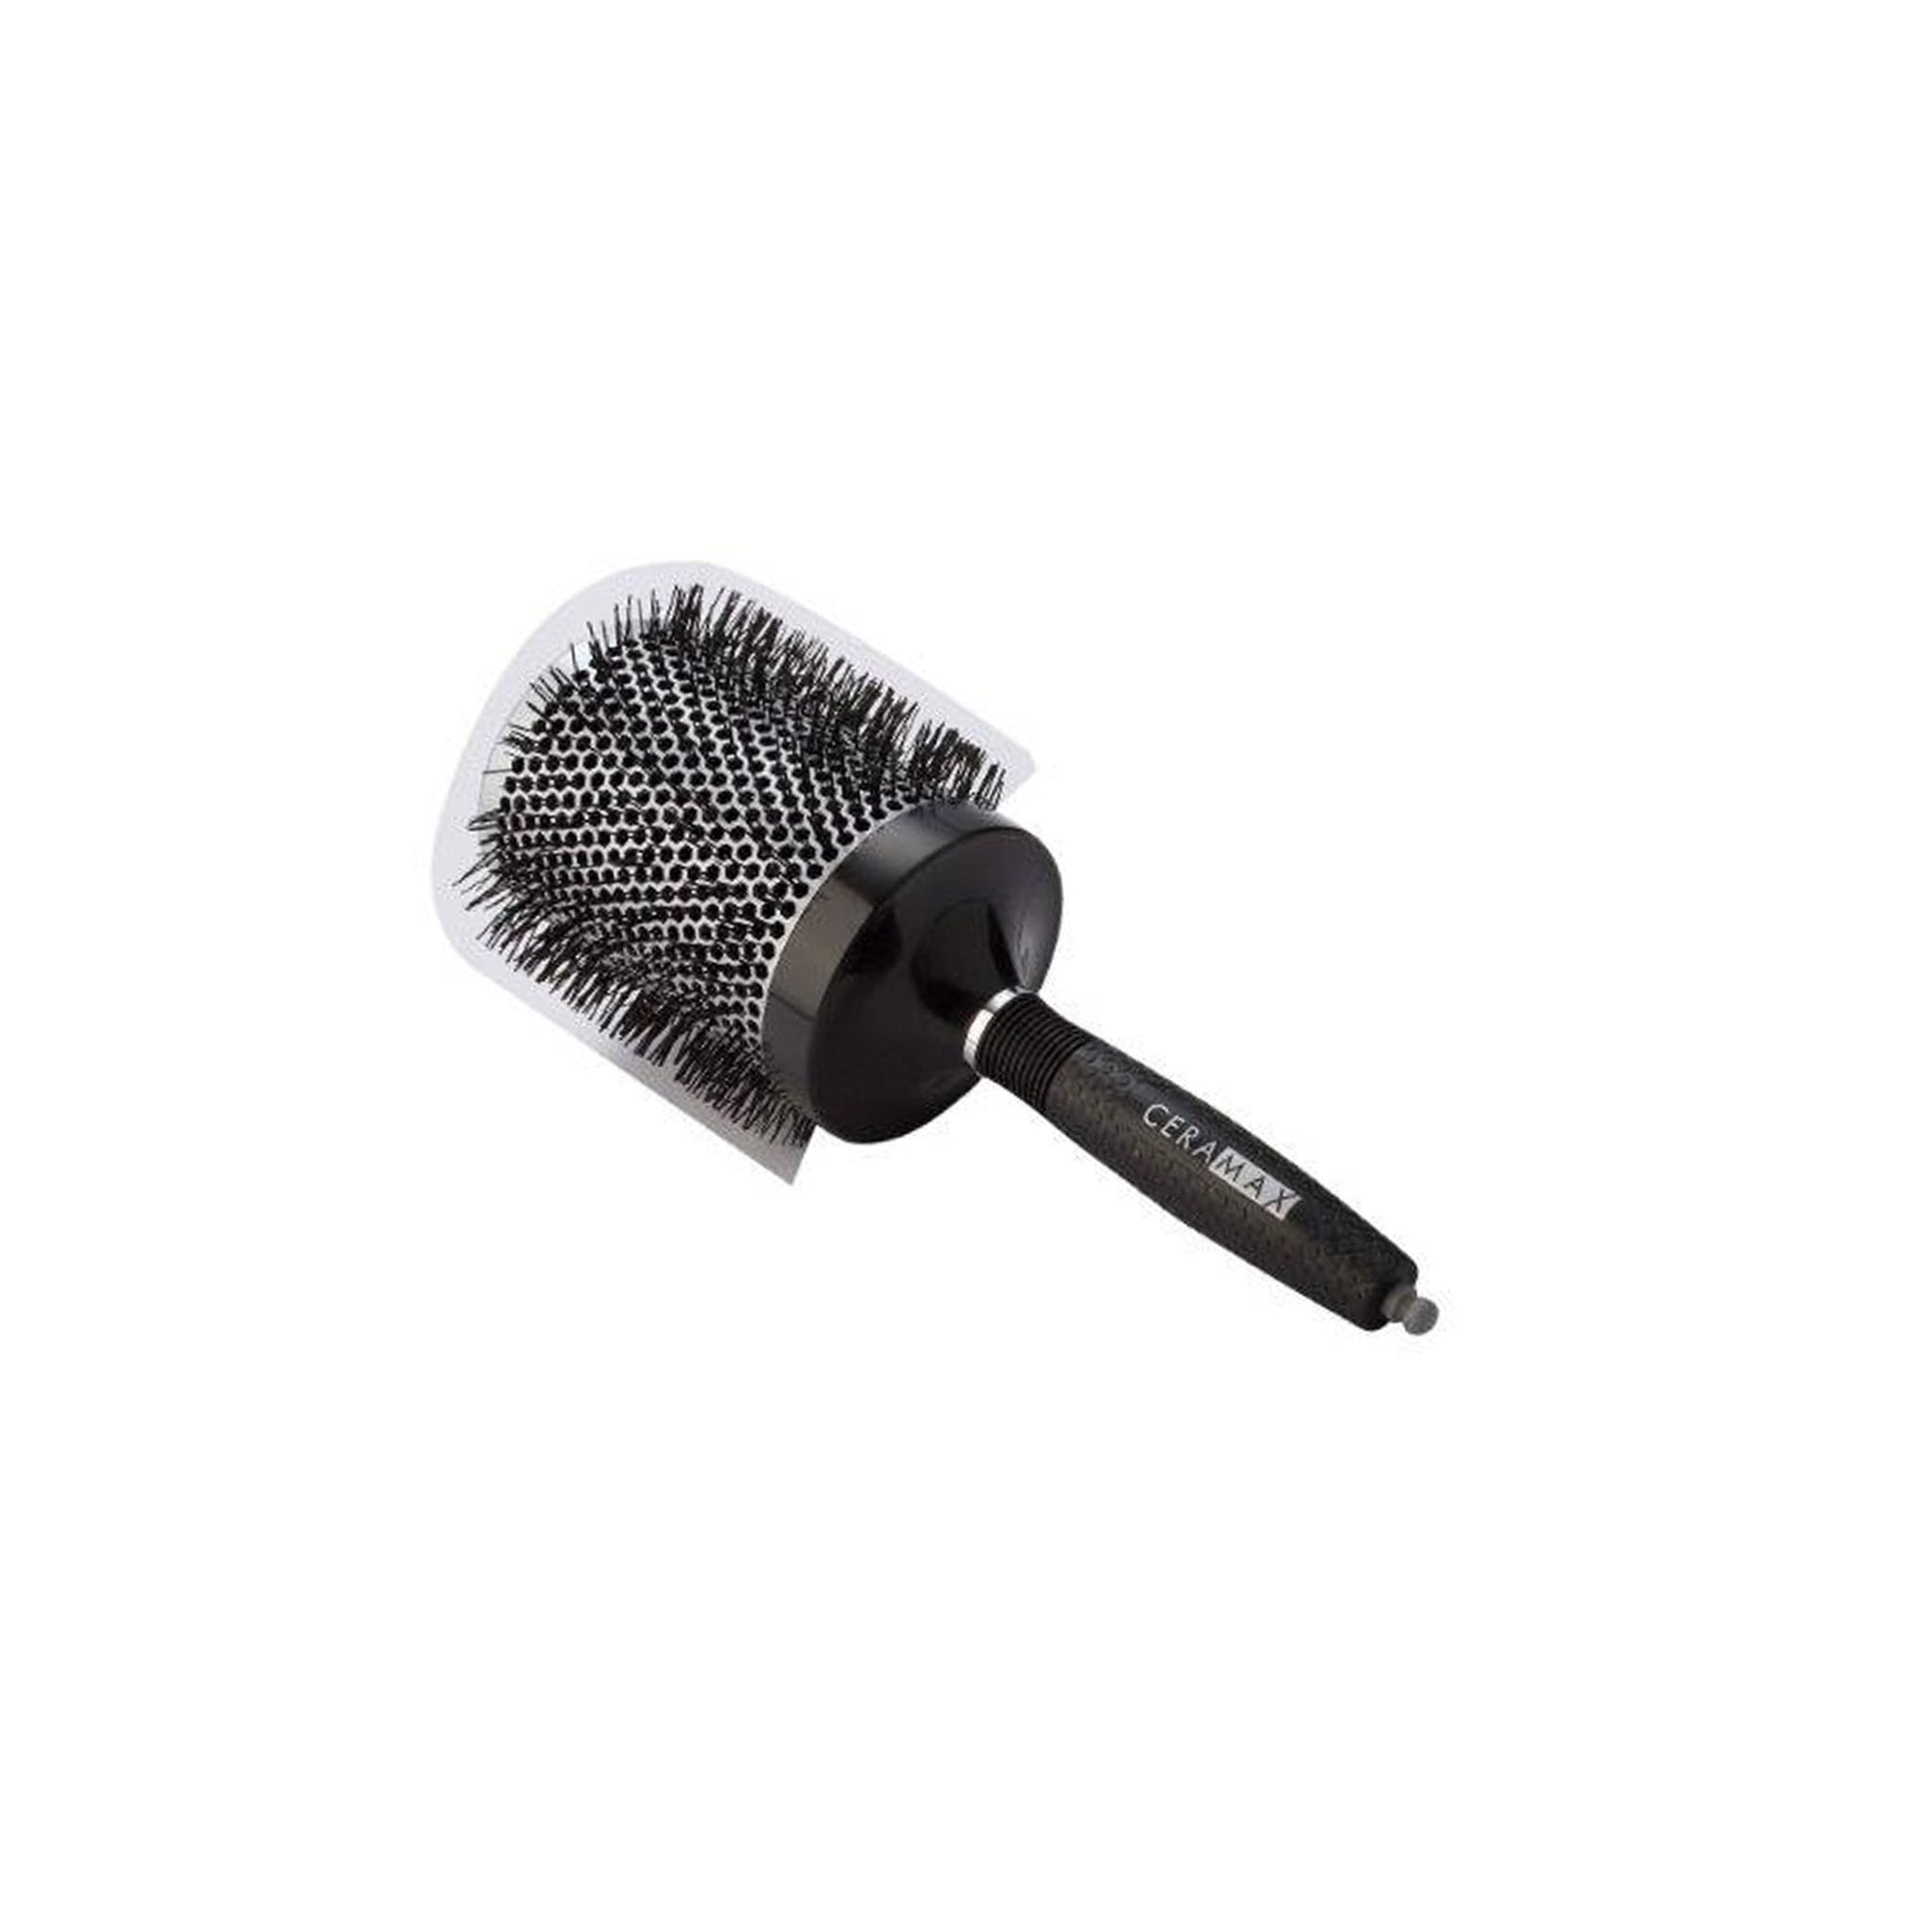 Ceramax Ionic Thermal Round Brush Jumbo 80mm